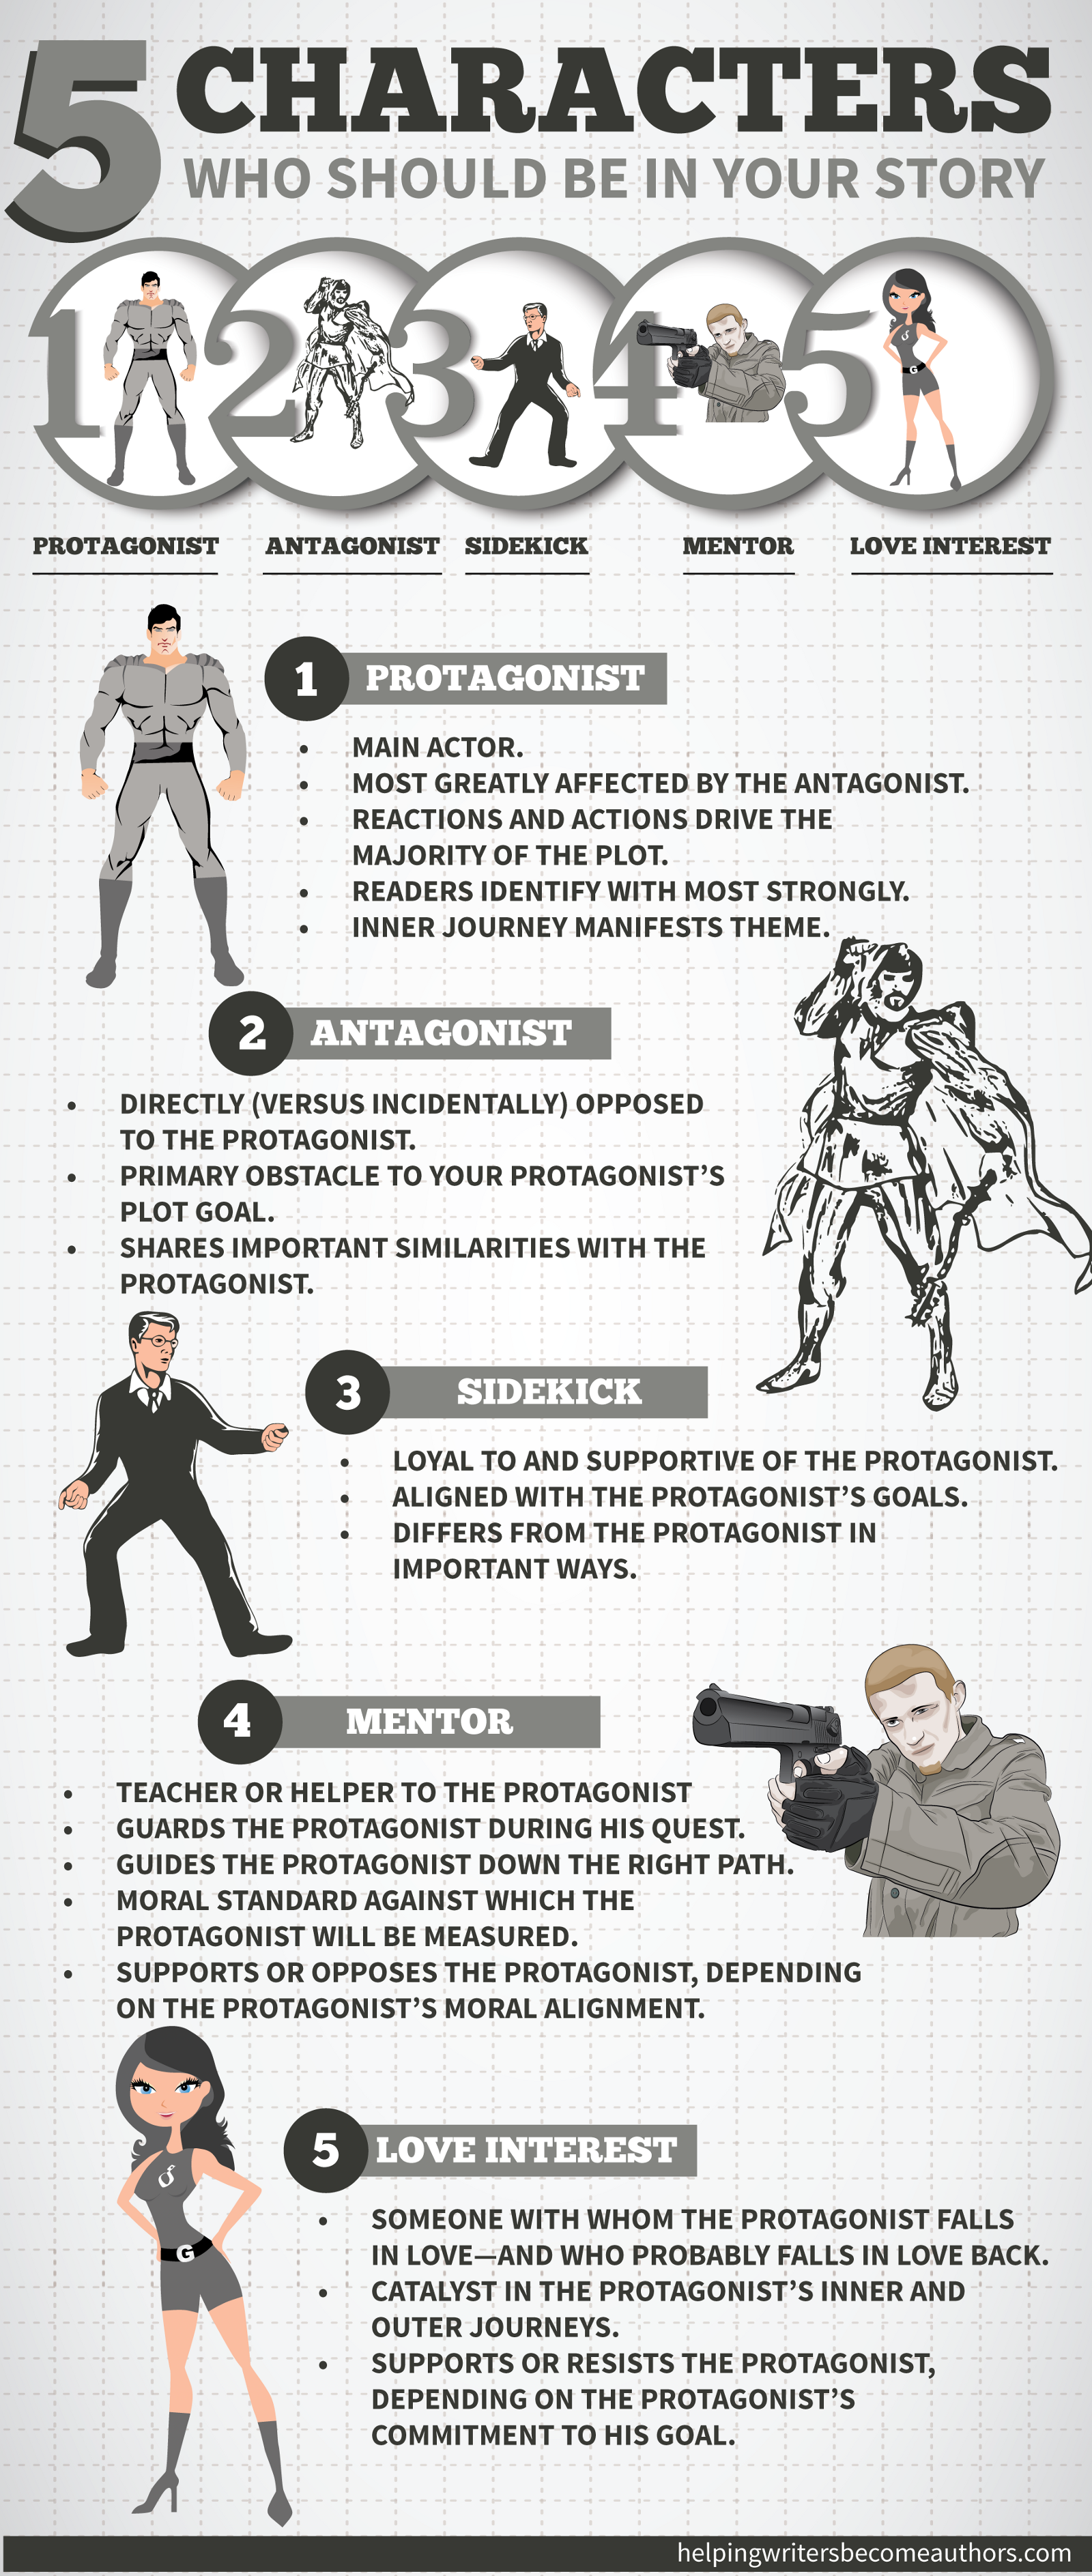 5-characters-who-should-be-in-your-story-protagonist-antagonish-sidekick-mentor-love-interest-infographic